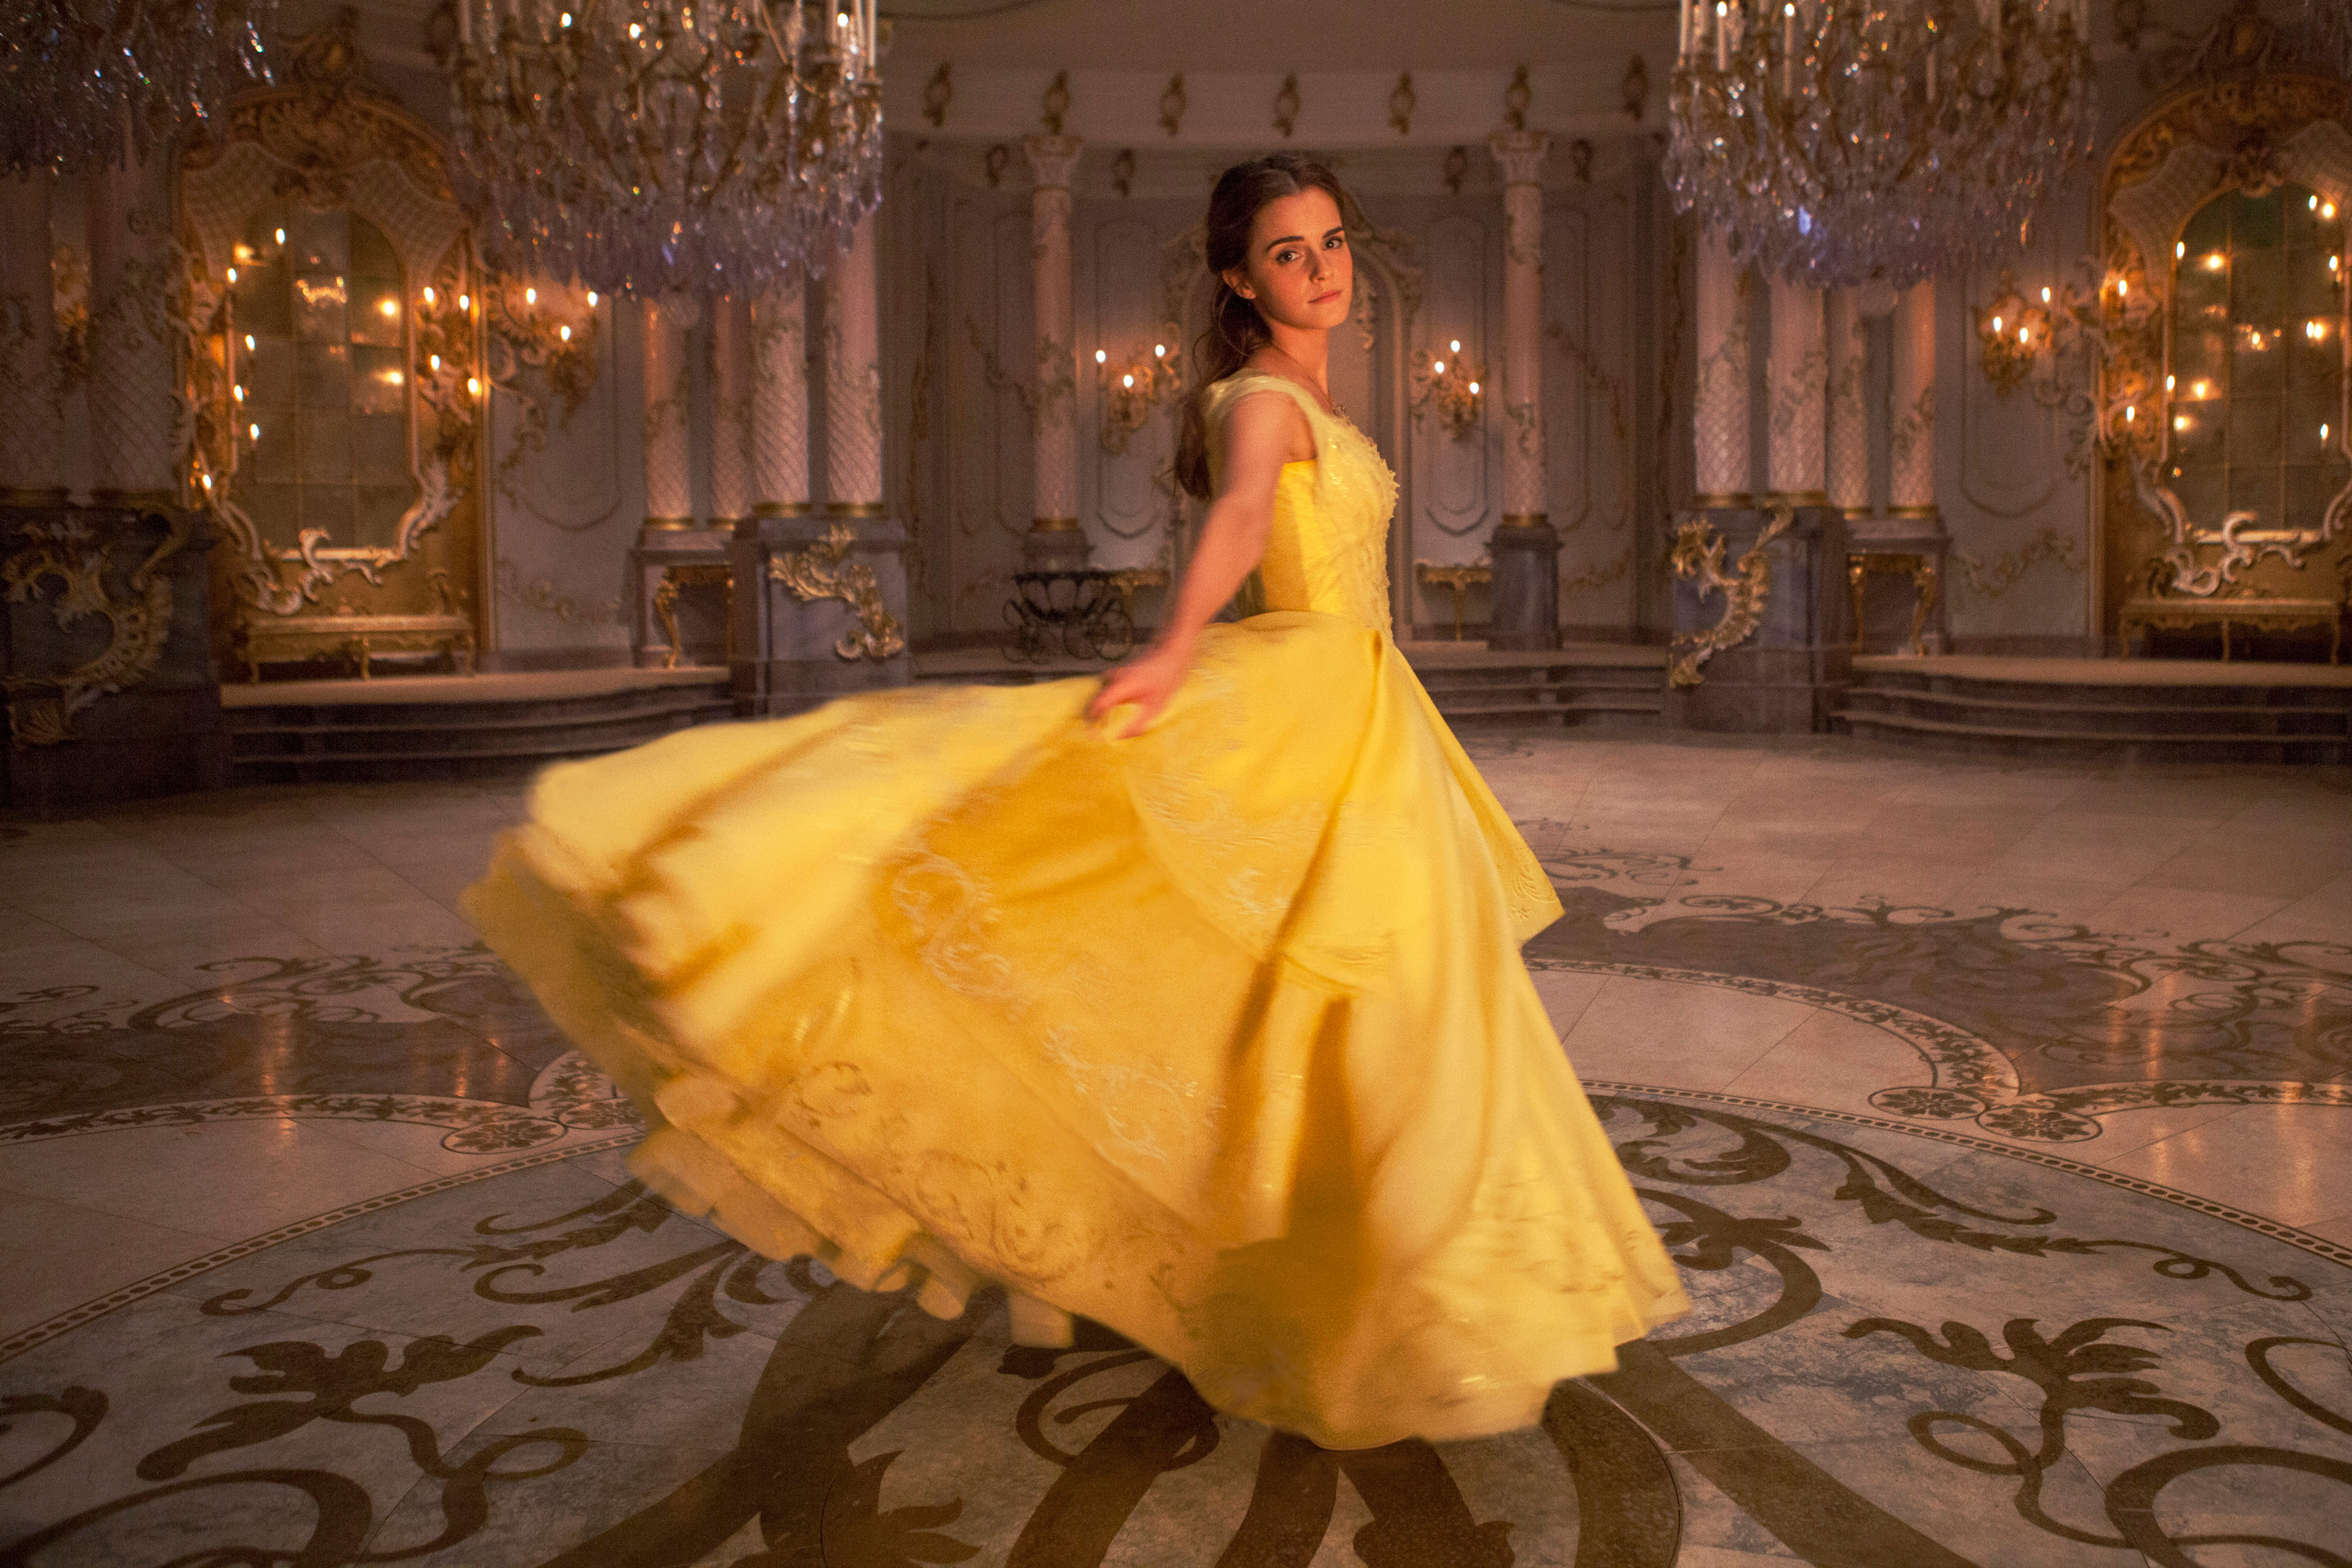 The 6 Best Things About New Beauty And Beast